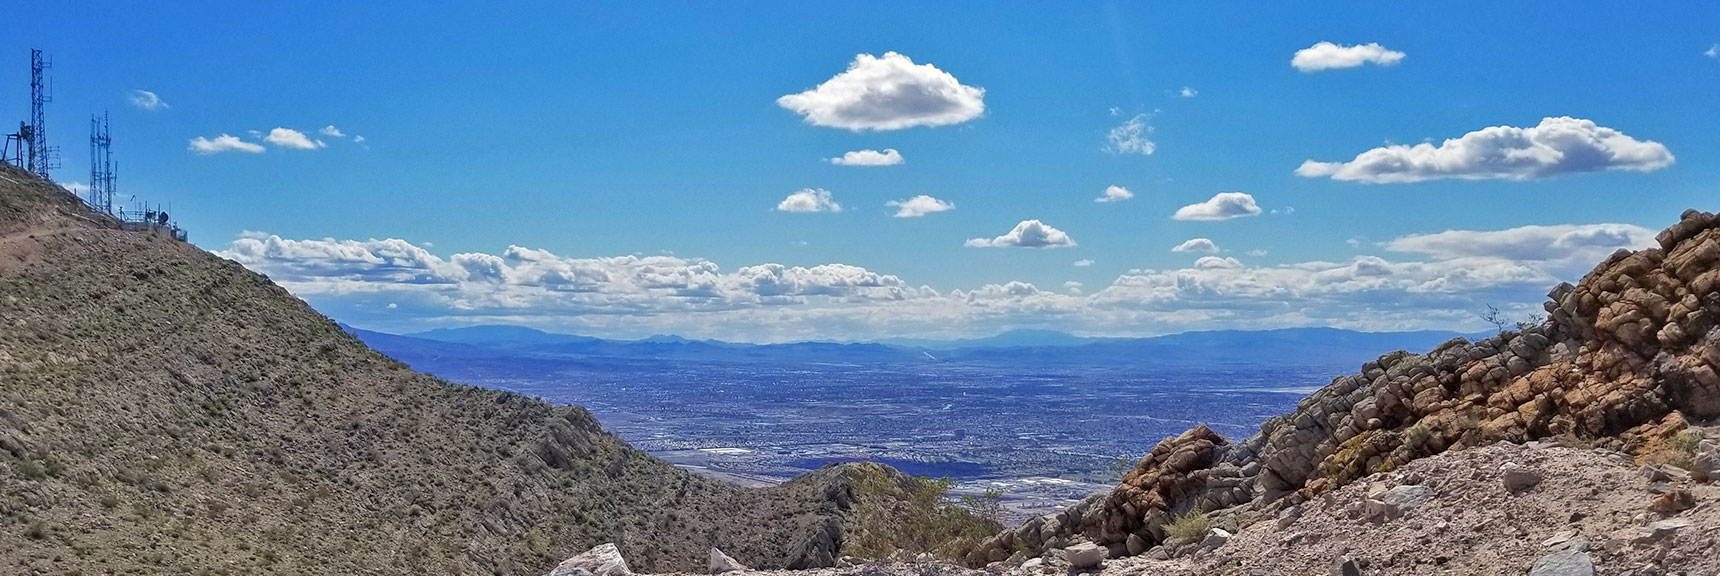 View of Las Vegas Valley from Near Second Summit of Frenchman Mountain, Nevada